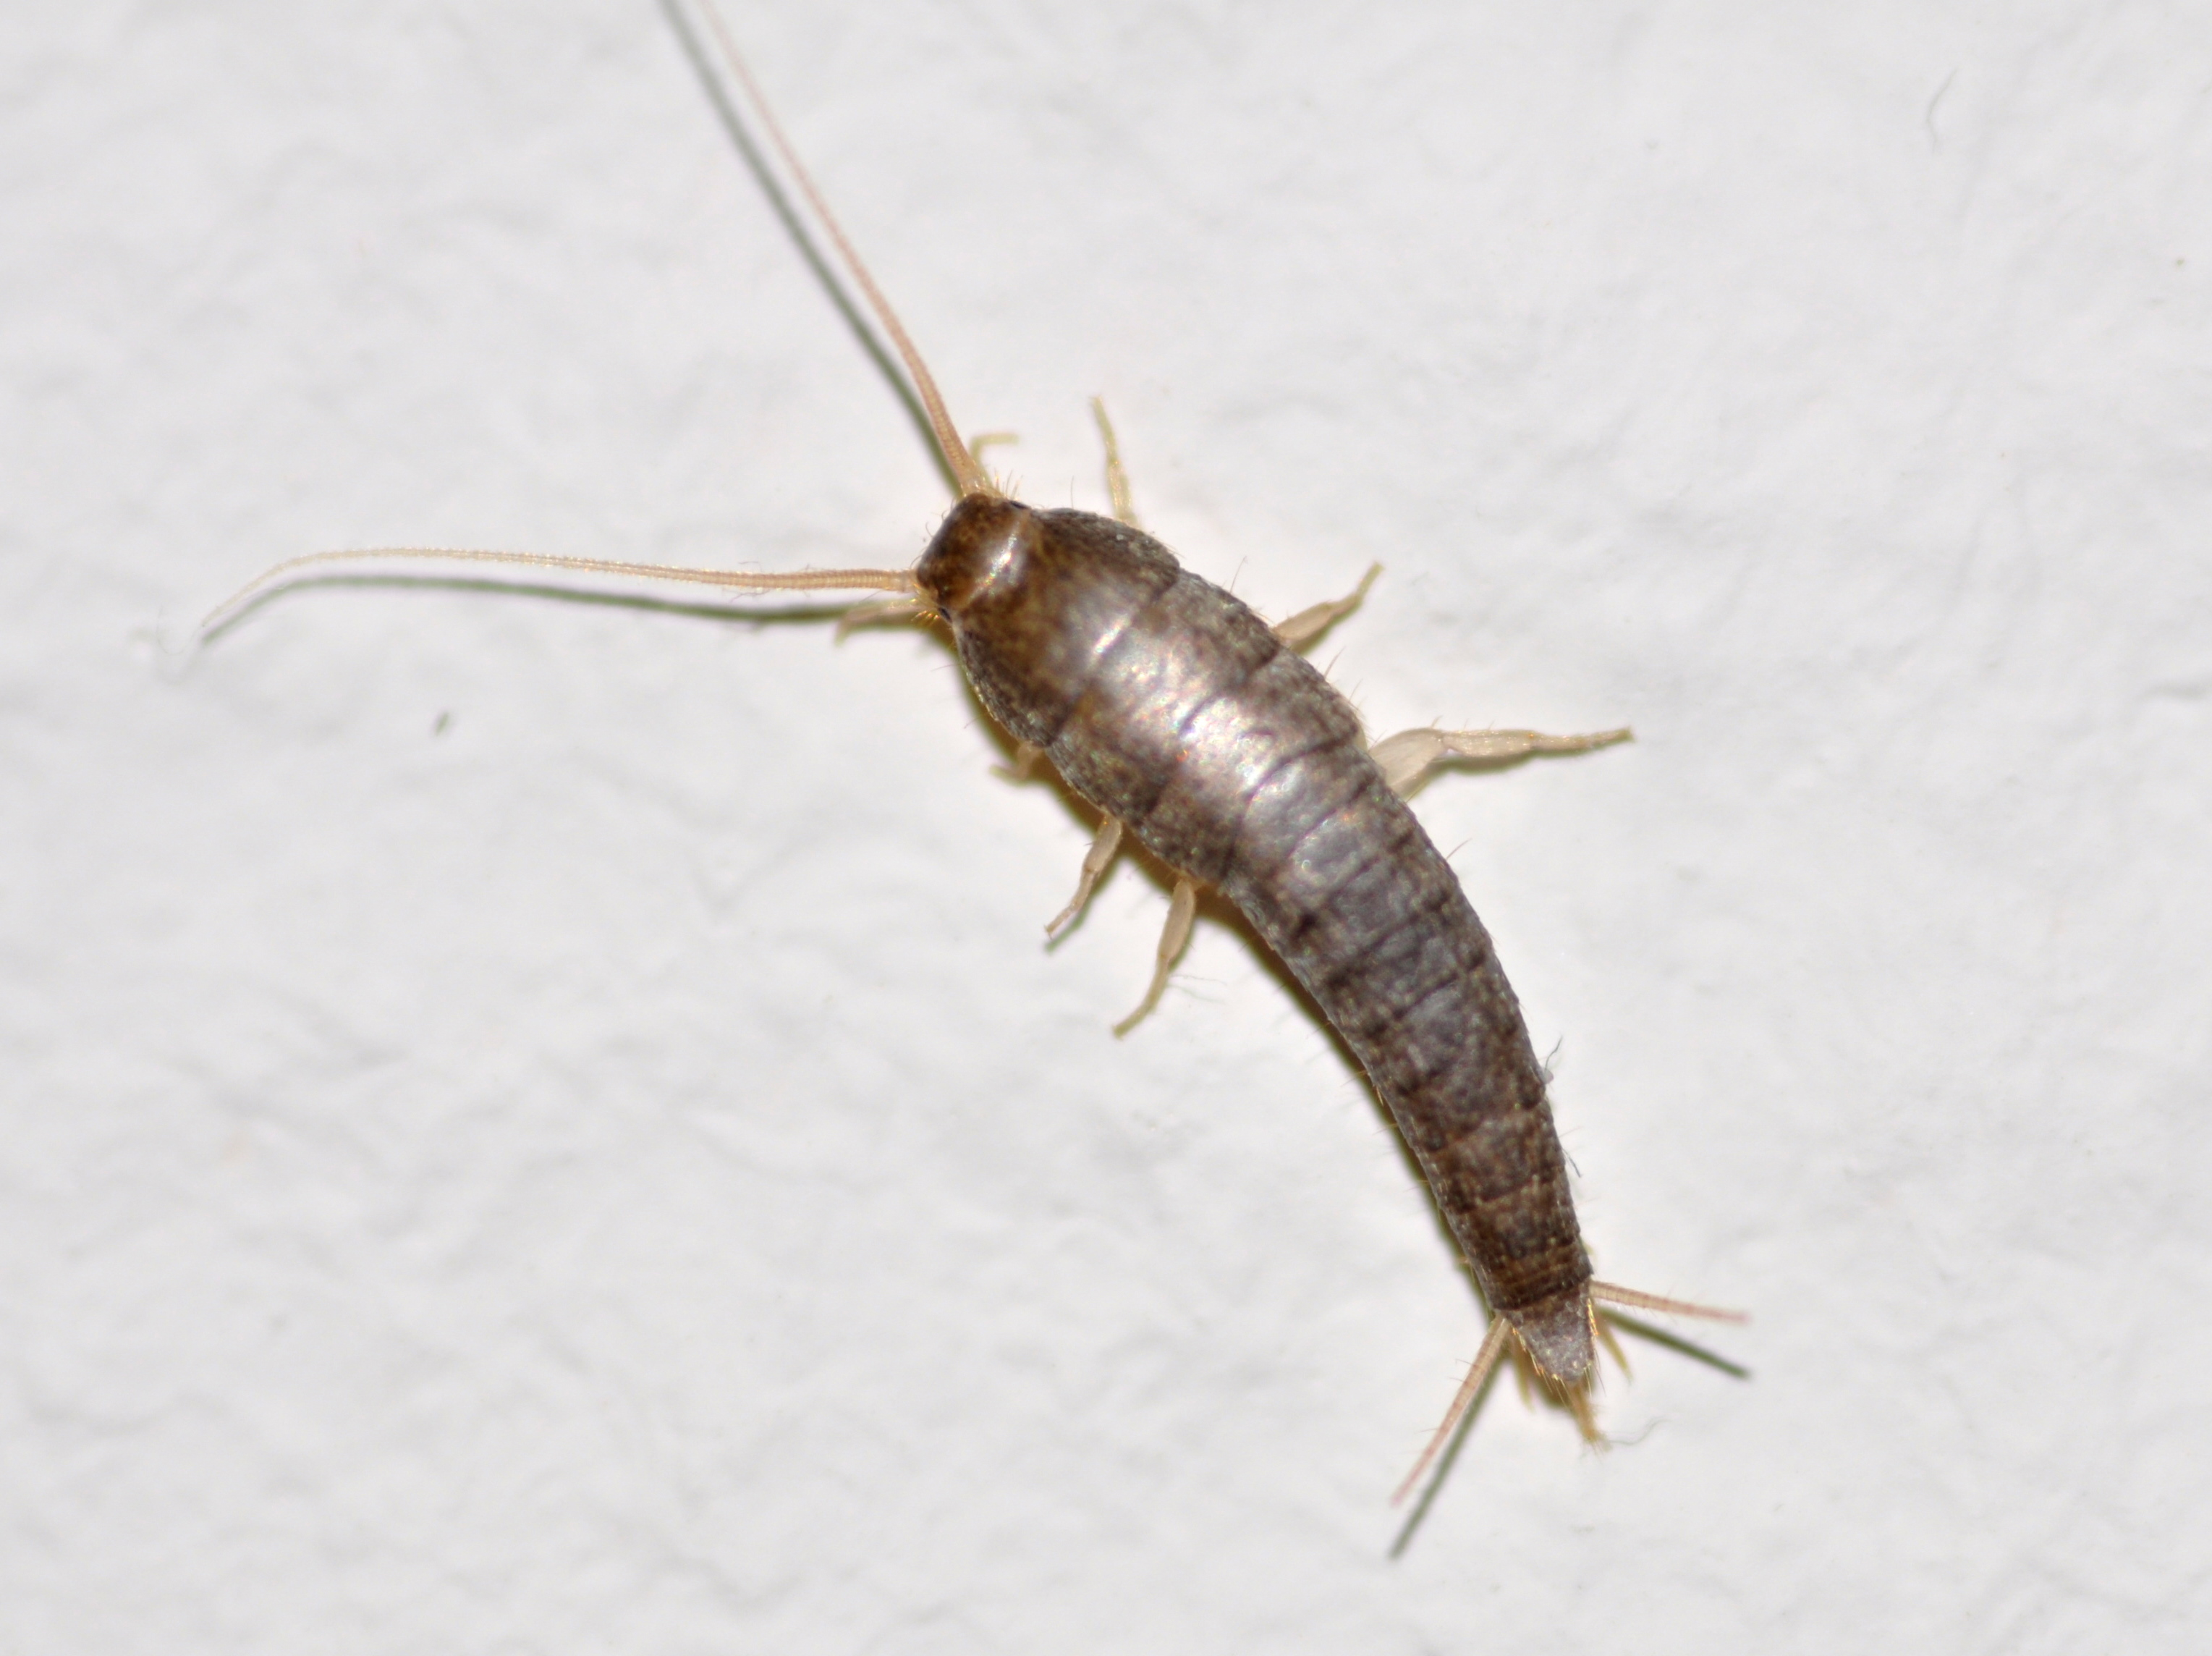 The silverfish interferes with life. Methods of insect control 82